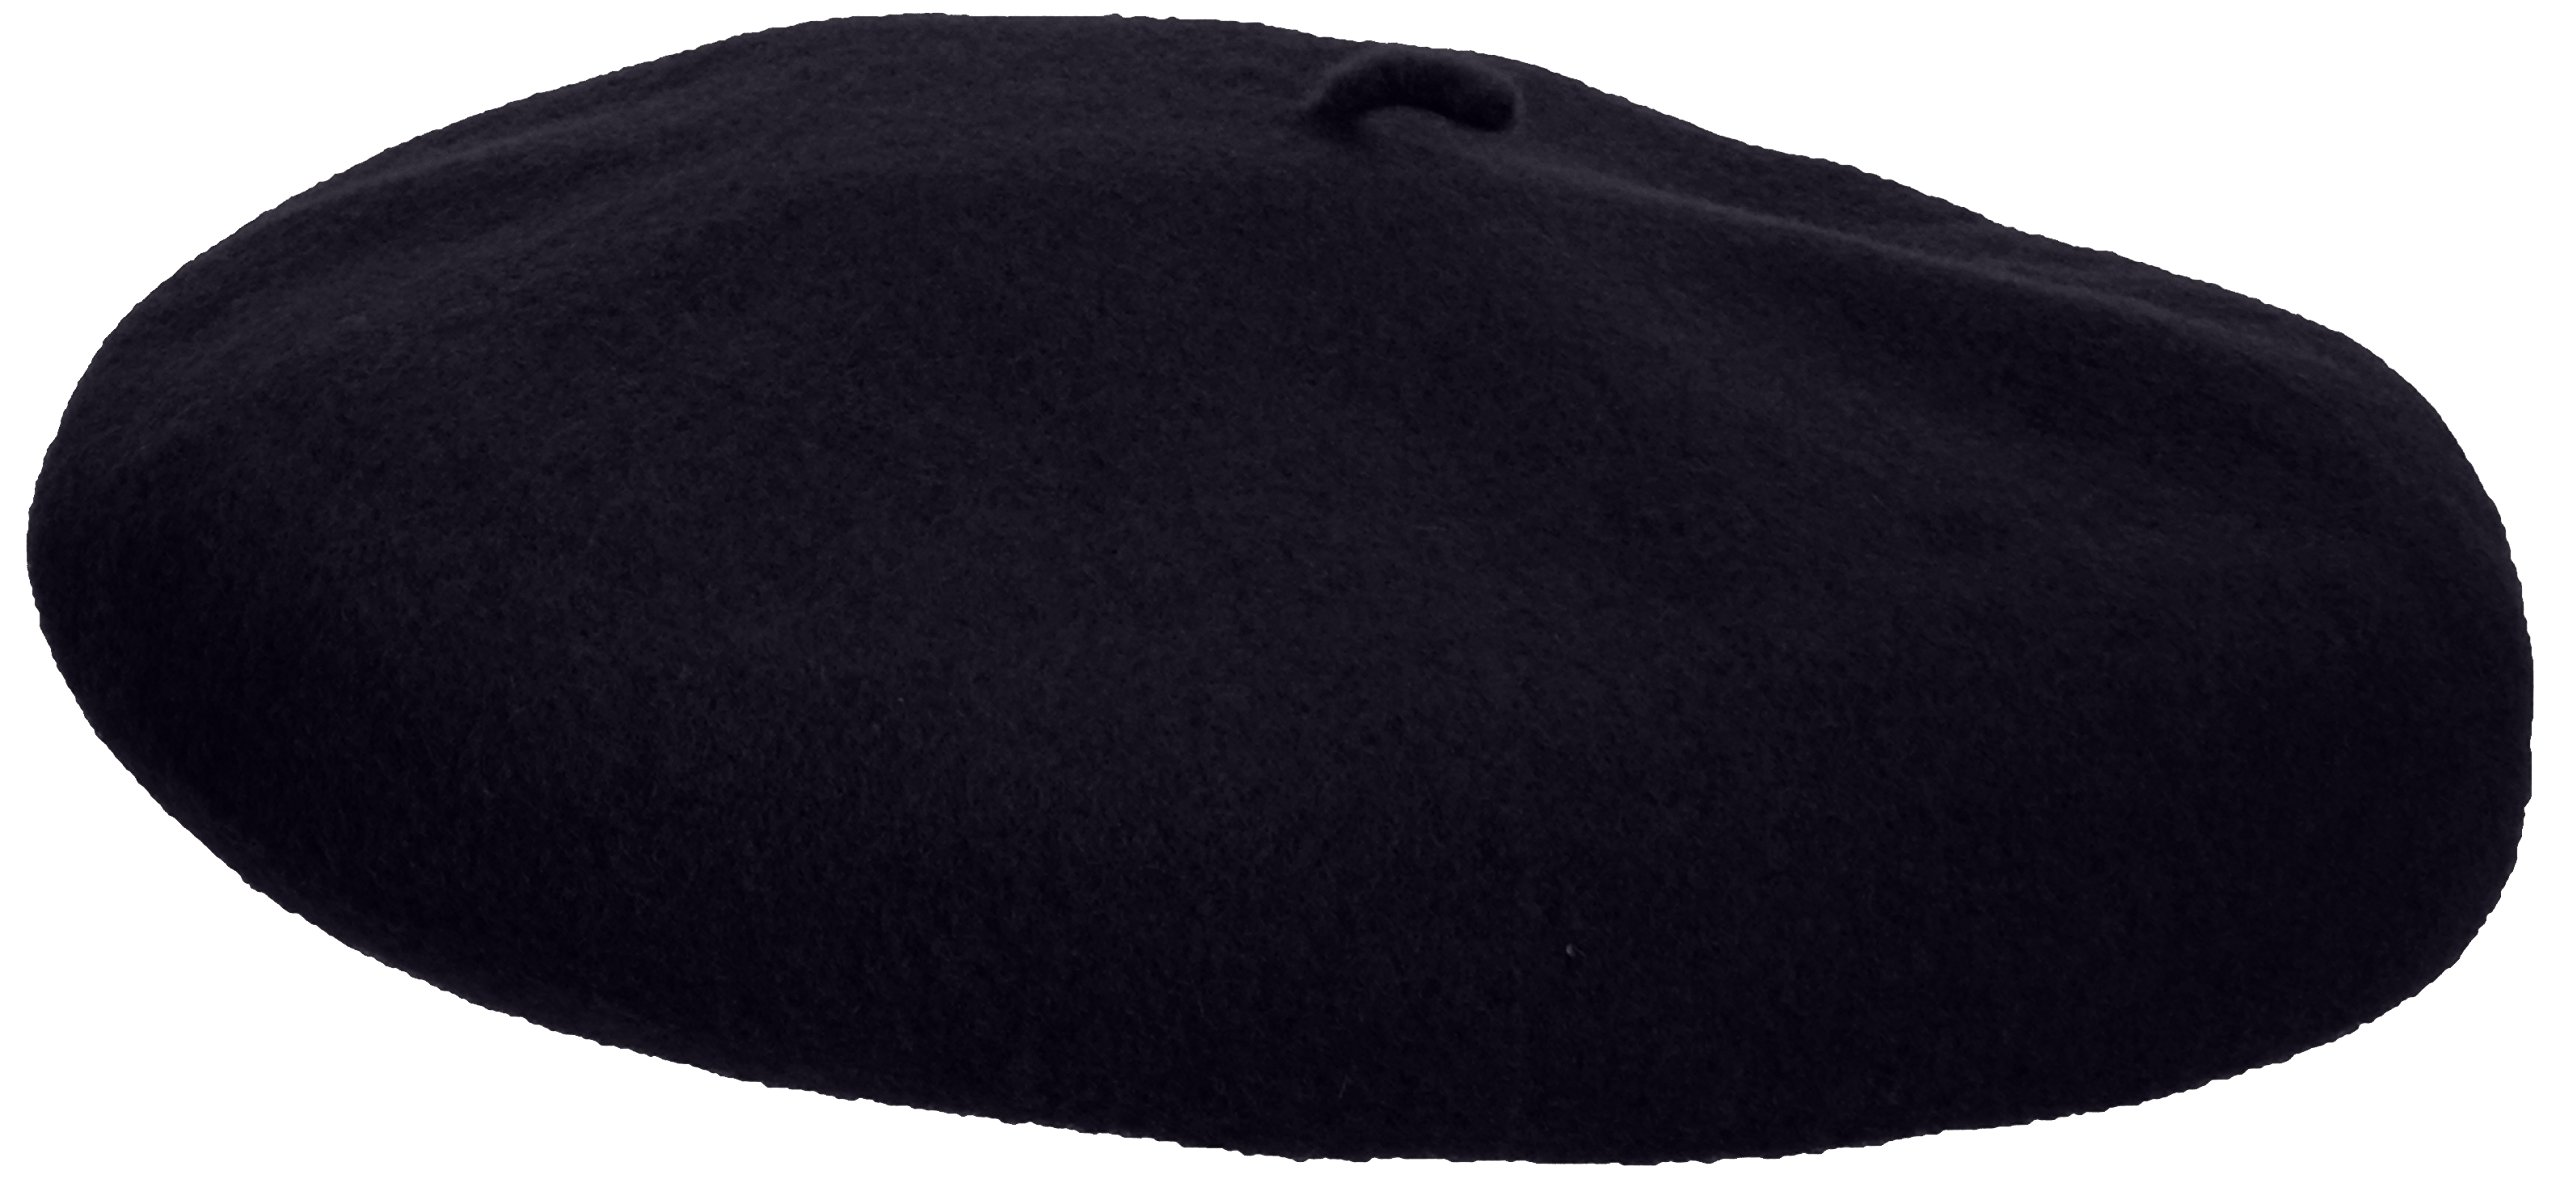 Kangol Men's Anglobasque Beret, From the Heritage Collection, Dark Blue (Large) by Kangol (Image #2)